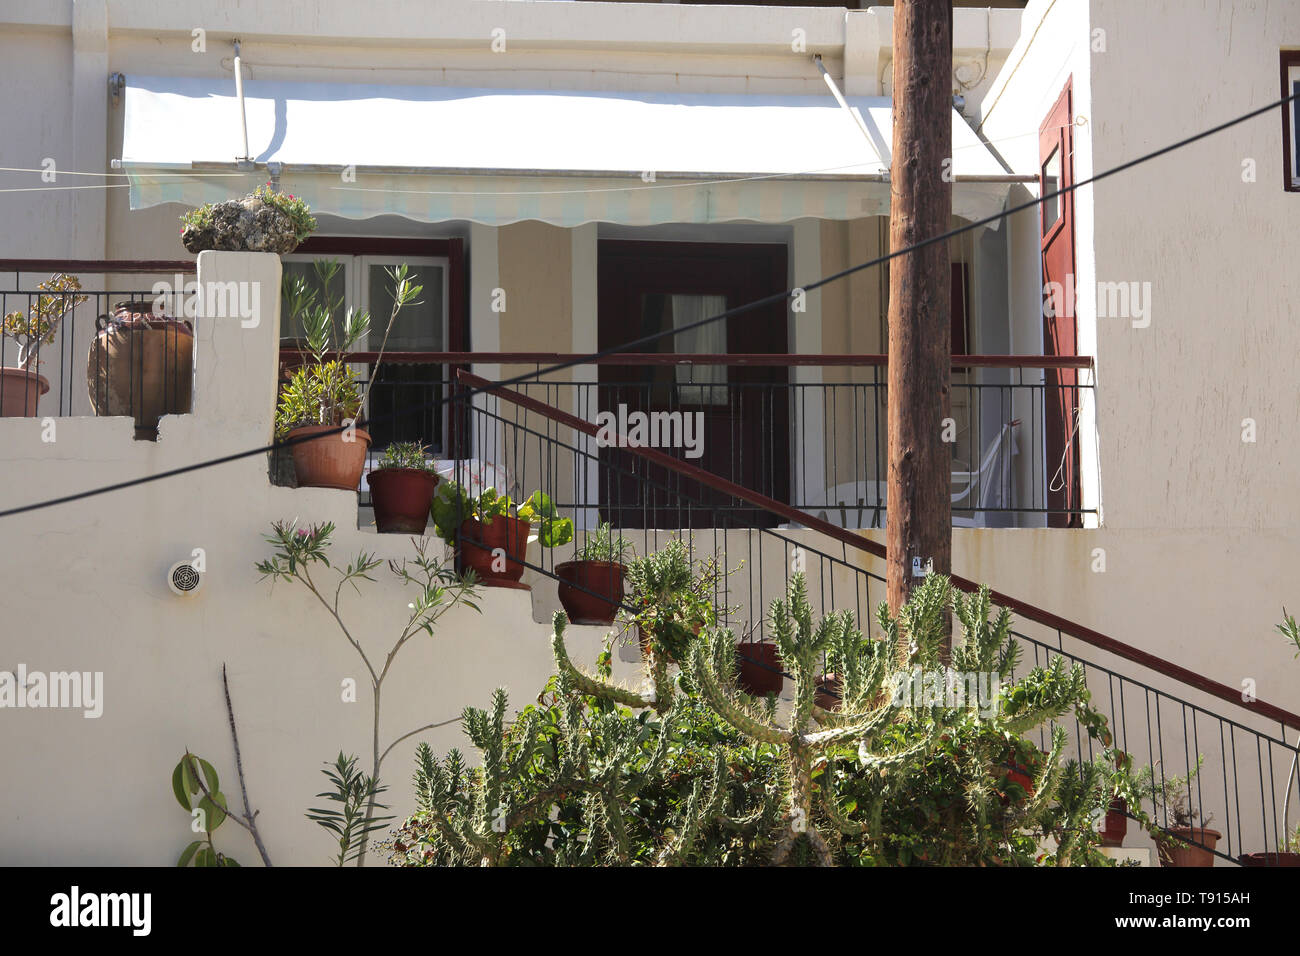 Vourkari Kea Island Greece Potted Plants on stairs leading up to Houses - Stock Image